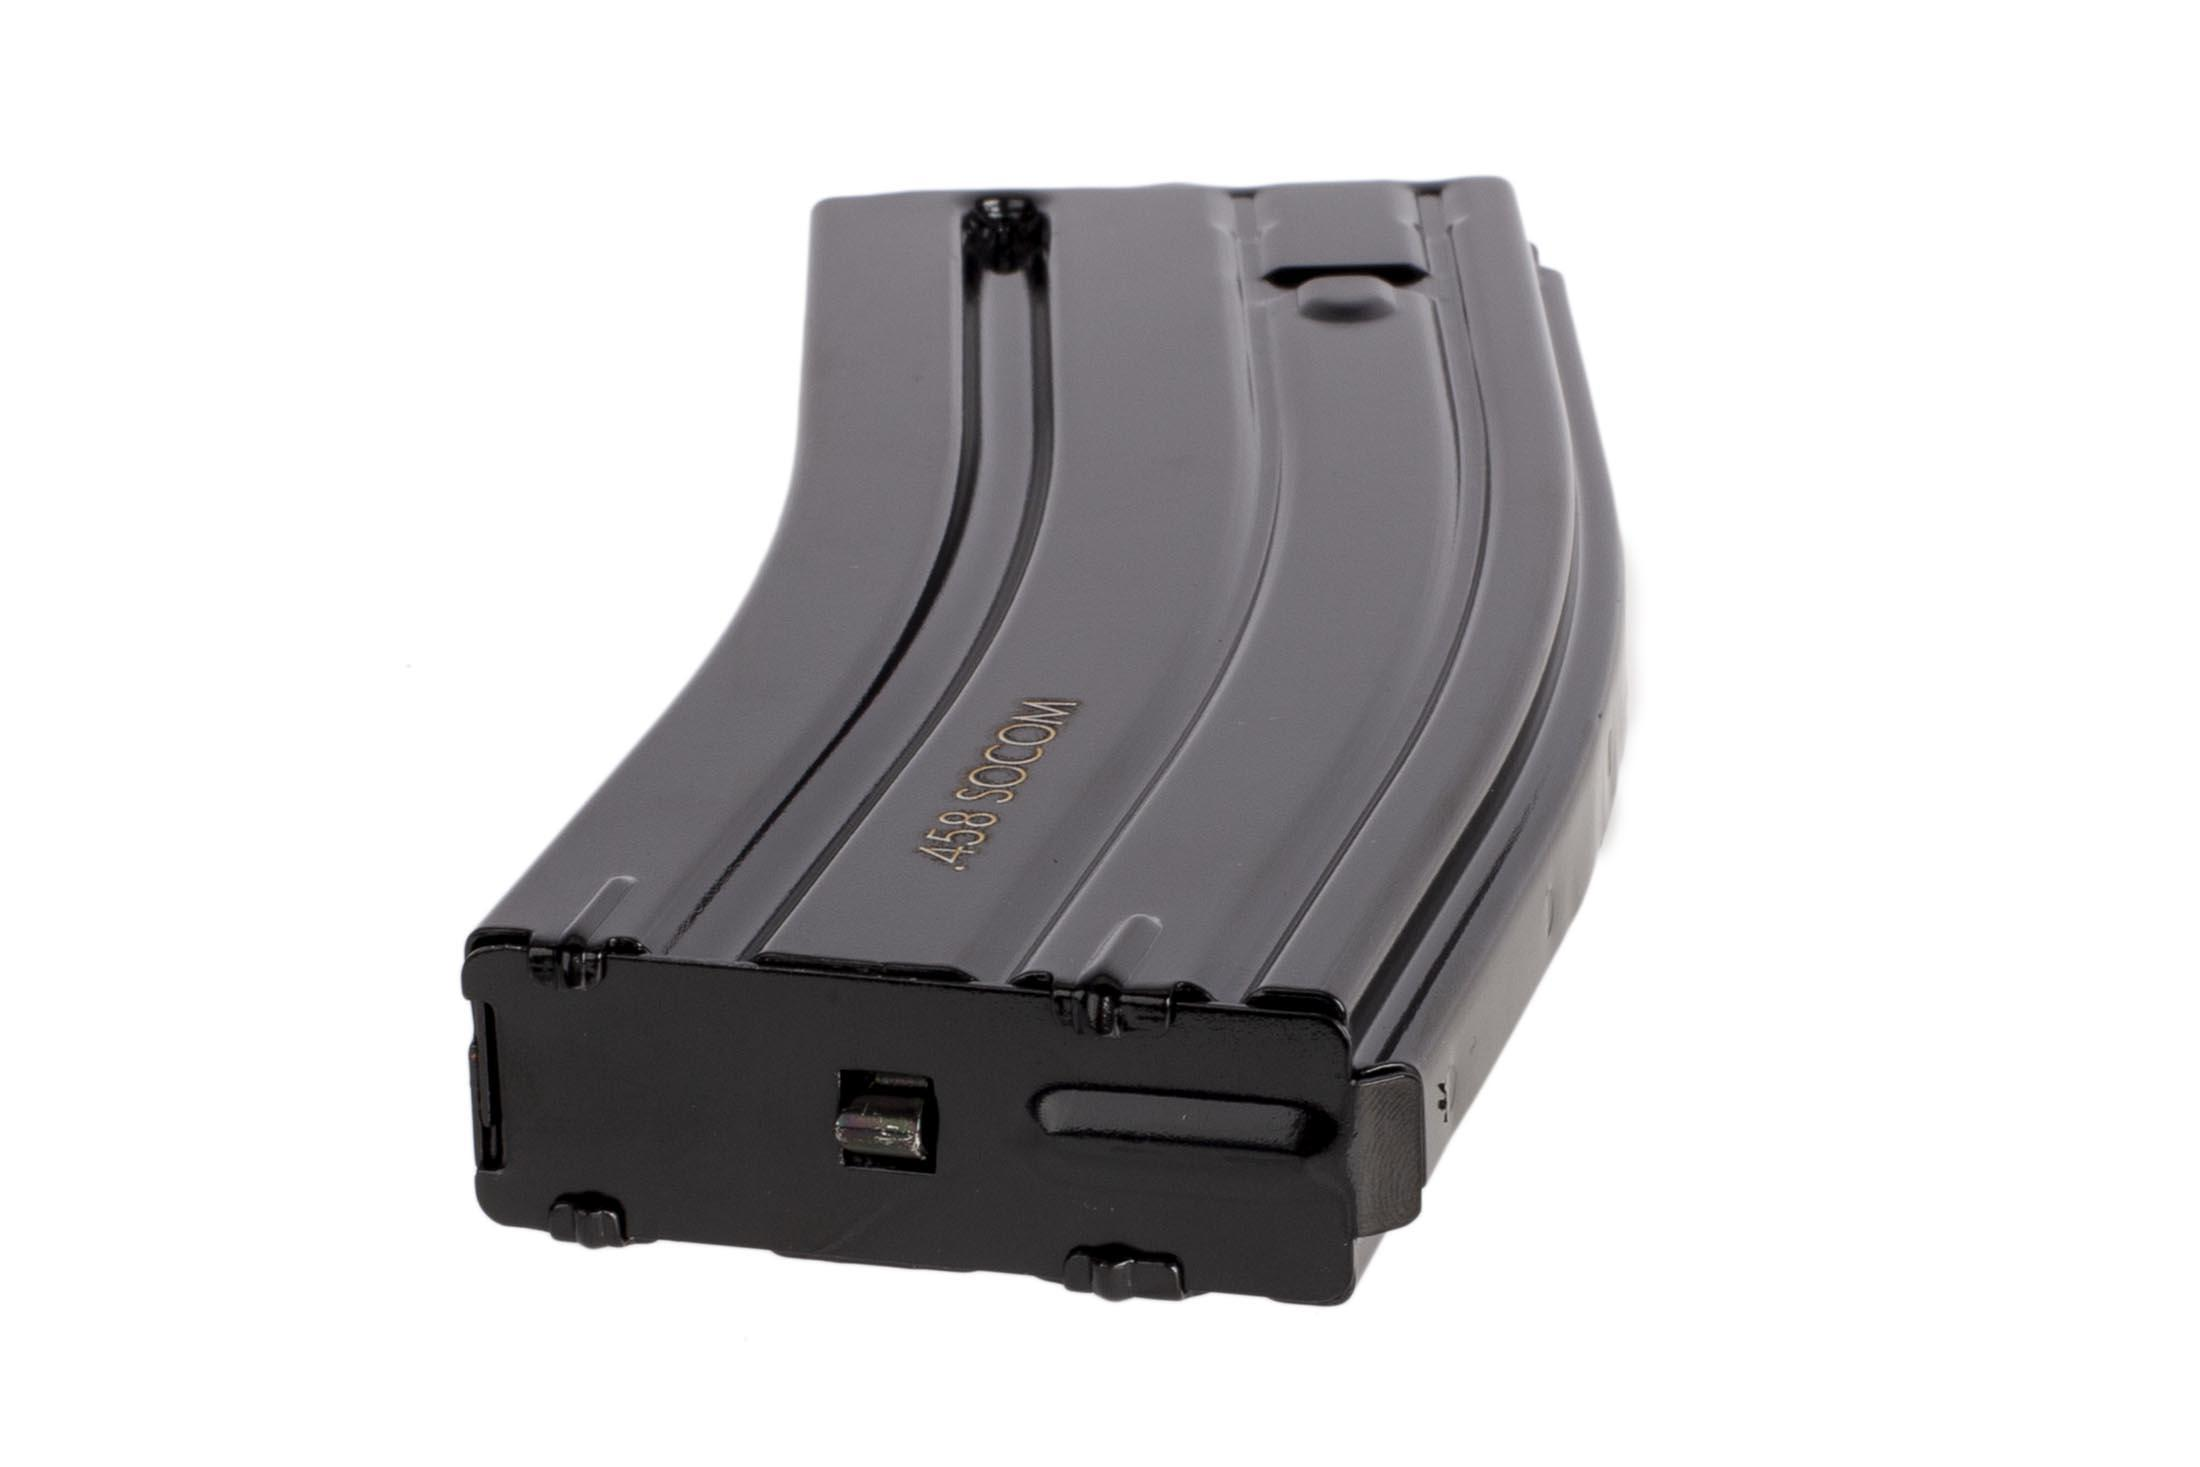 The Radical Firearms 458 SOCOM 10 round magazine has a stainless steel follower spring